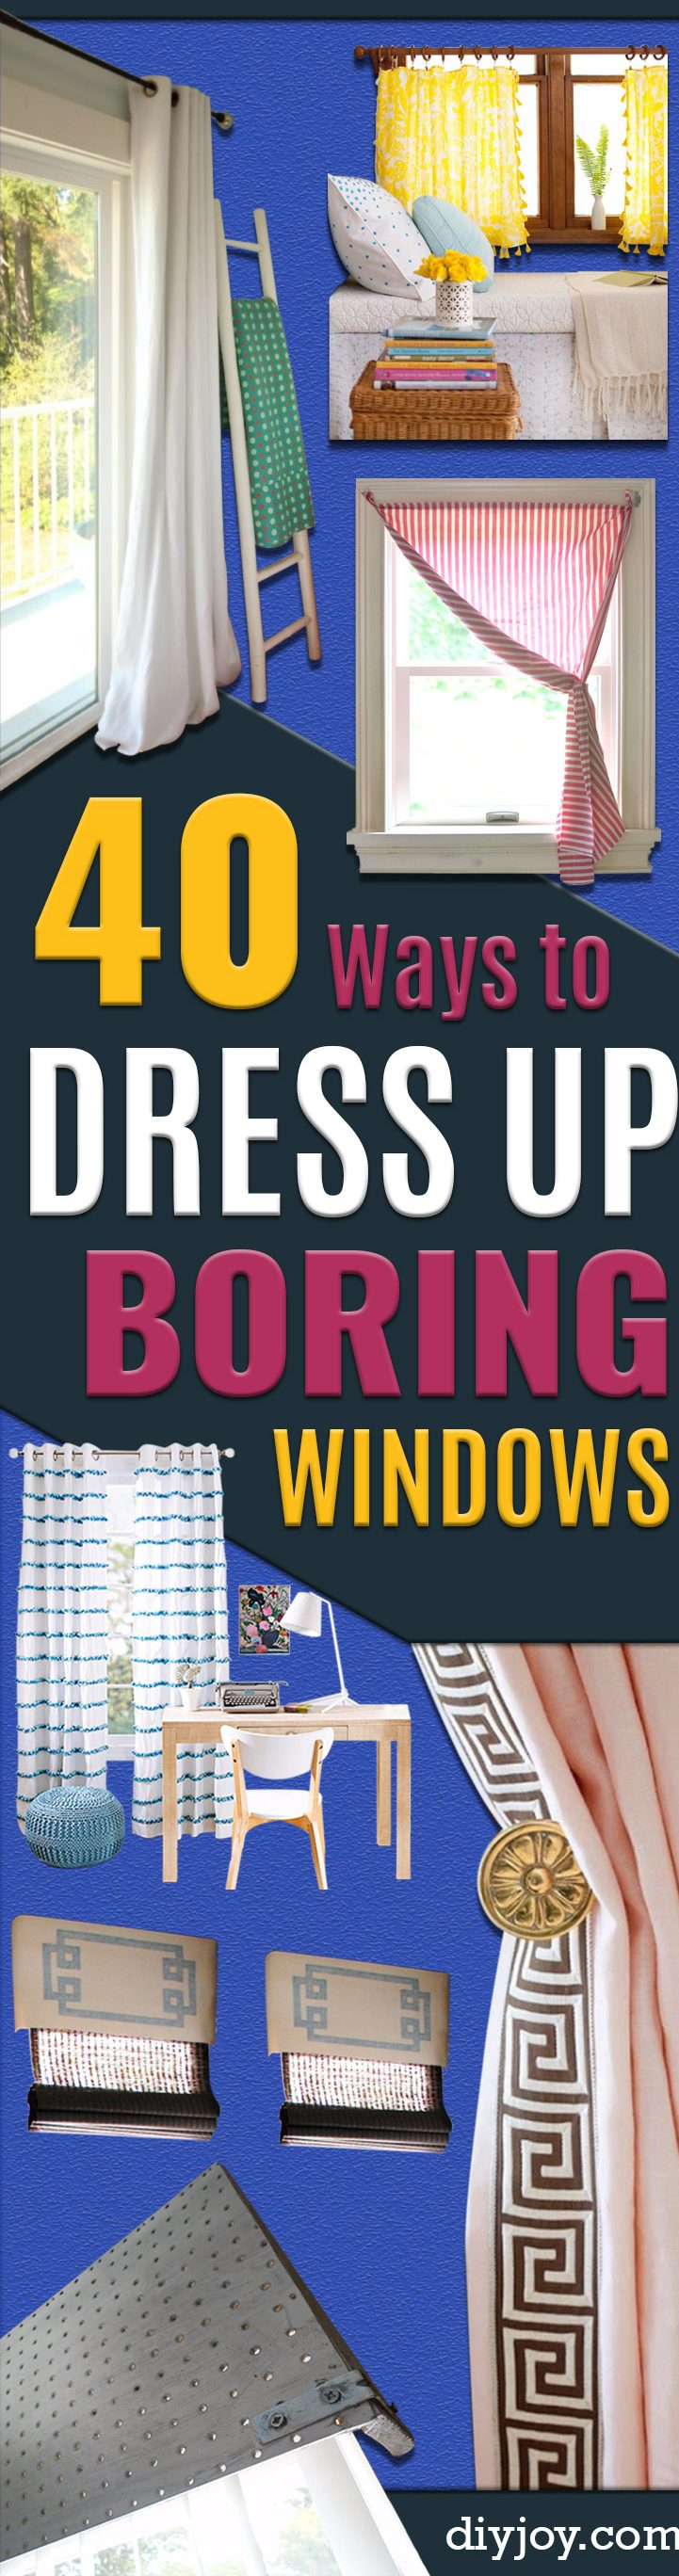 40 DIY Ways to Dress Up Boring Windows - Cool Crafts and DIY Ideas to Make Awesome Bedrooms, Living Room Decor - Easy No Sew Ideas, Cheap Ideas for Makeovers, Painting and Sewing Tutorials With Step by Step Instructions for Awesome Home Decor